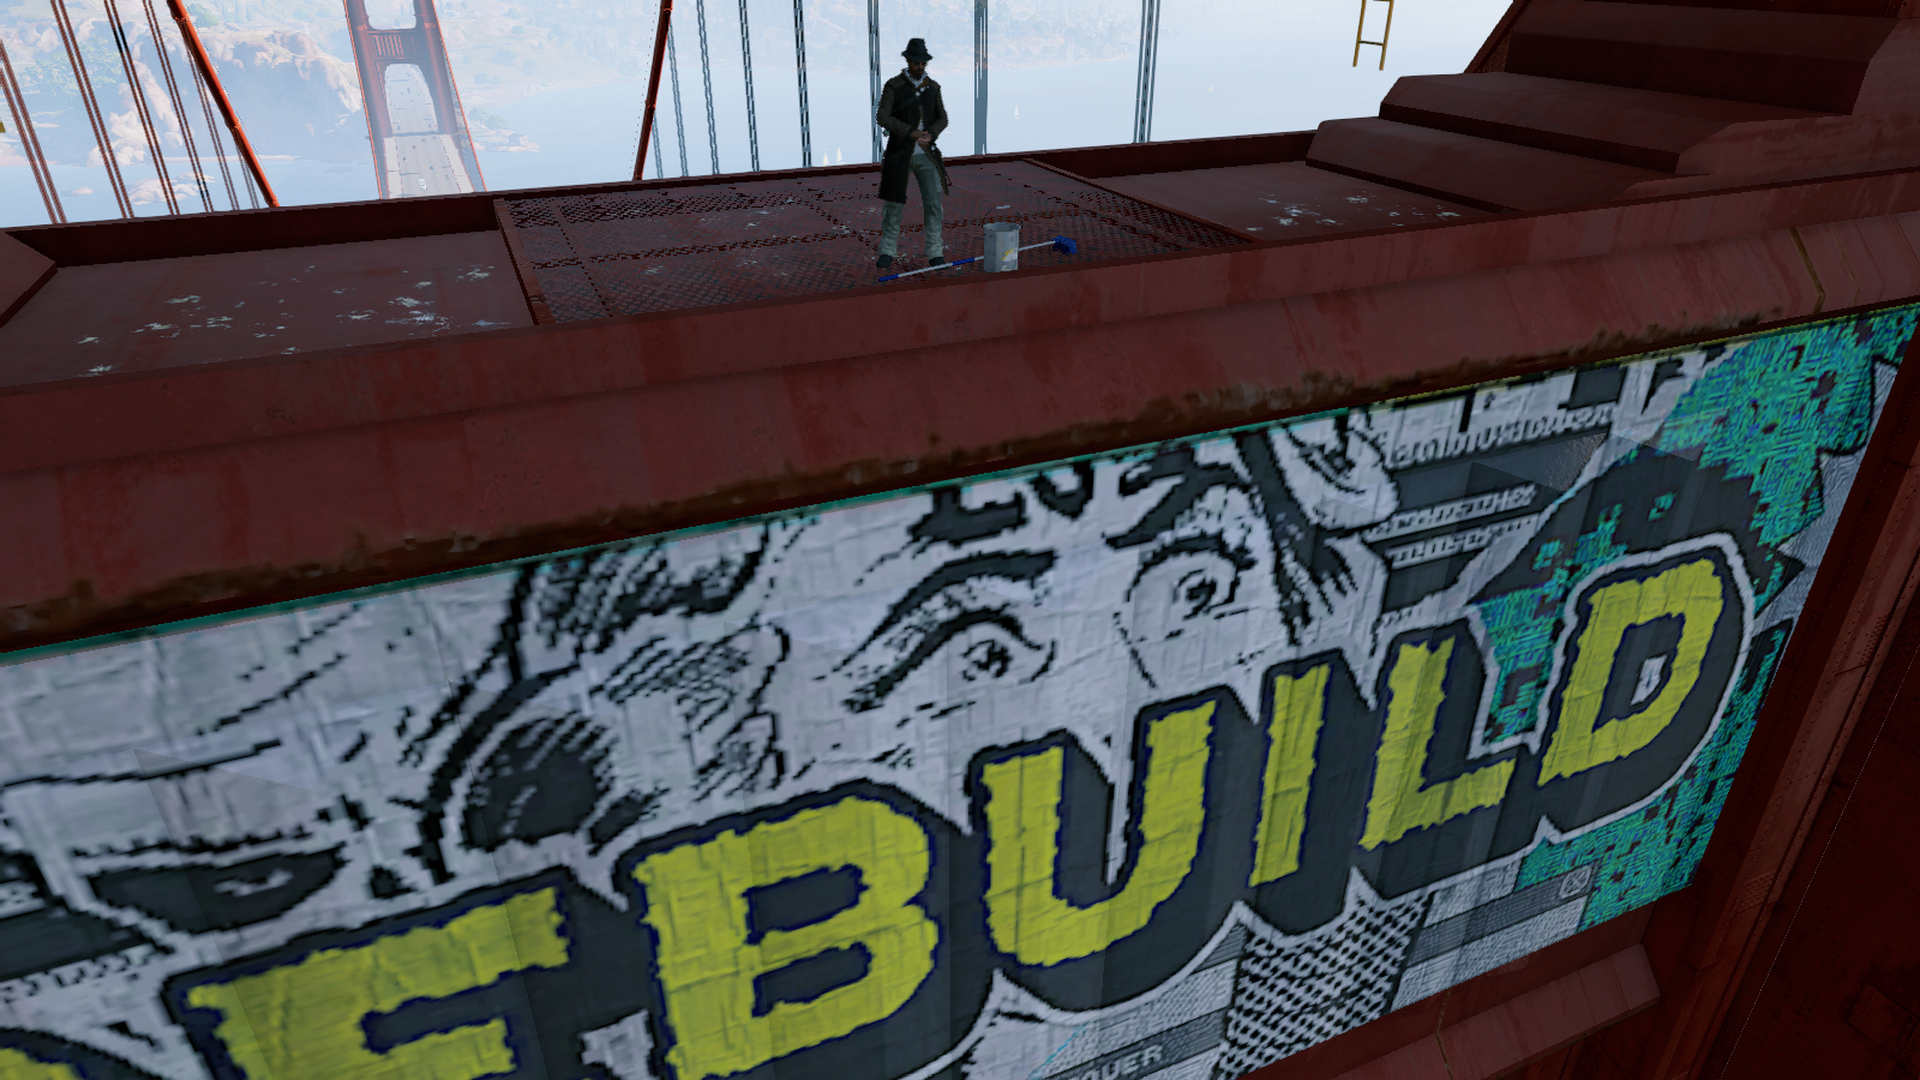 Marcus while tagging the Golden Gate Bridge